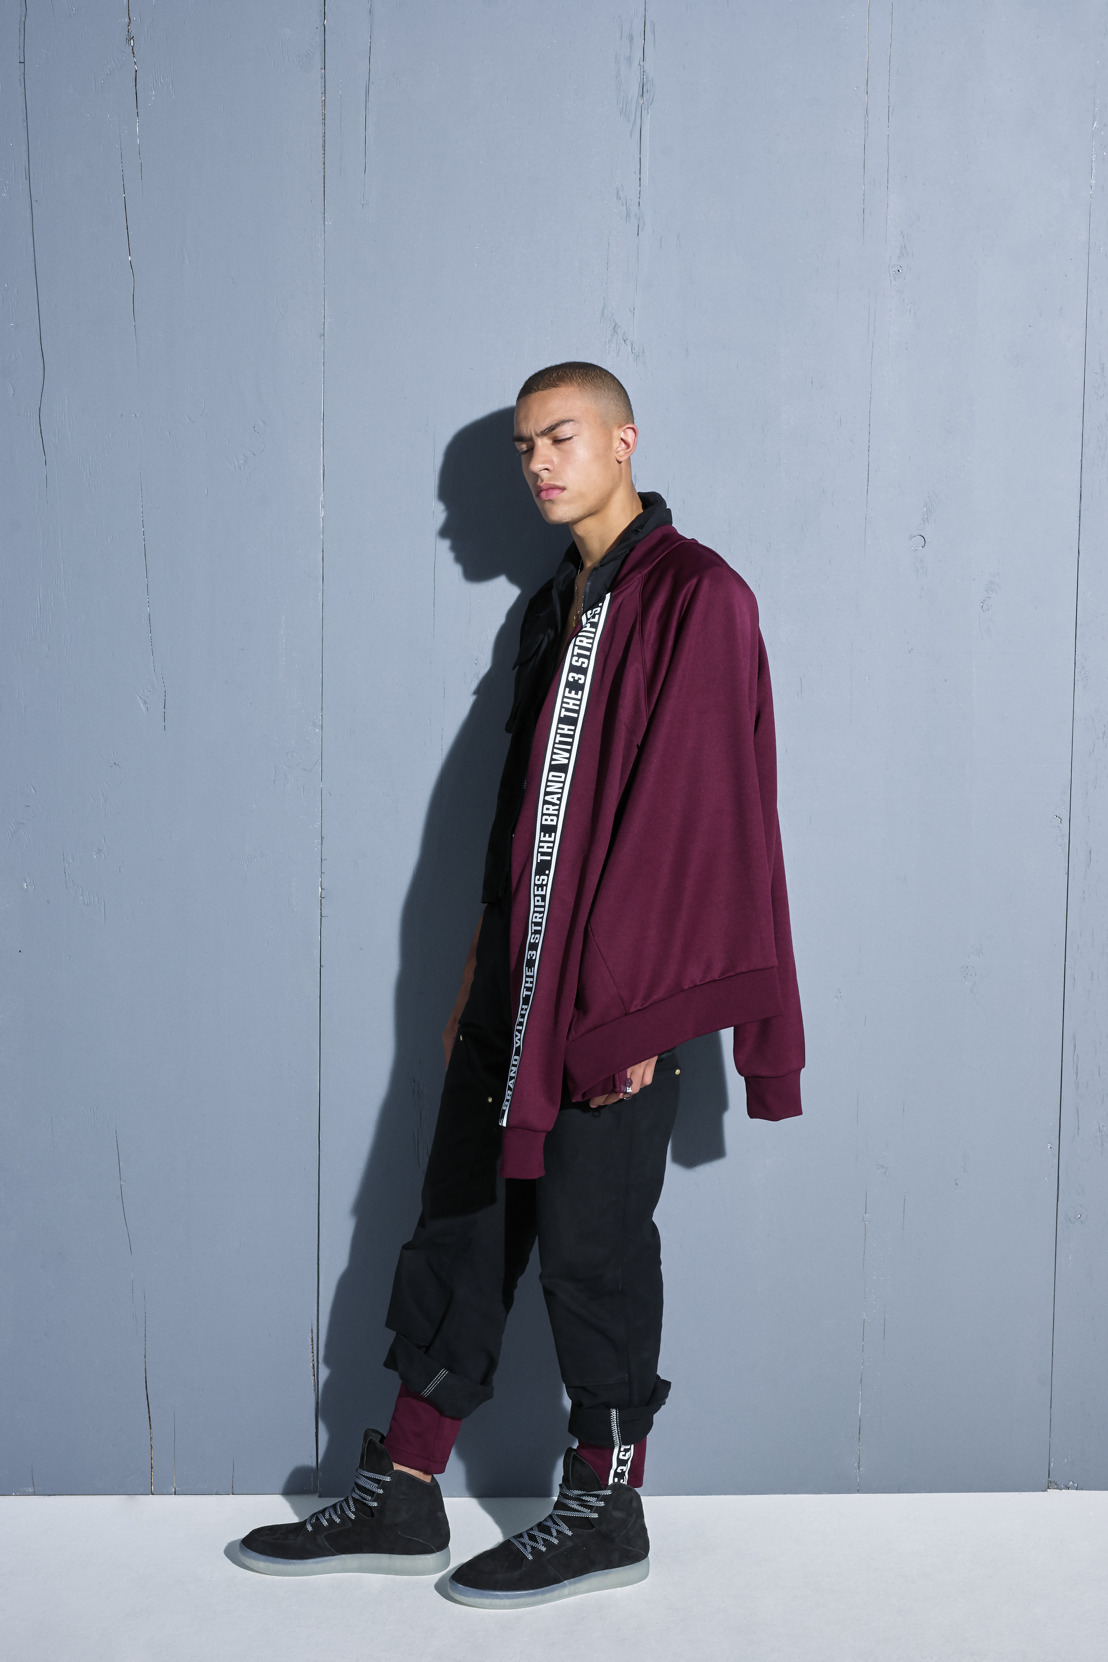 ADIDAS ORIGINALS FW16 TUBULAR LOOKBOOK: UN VISTAZO AL FUTURO